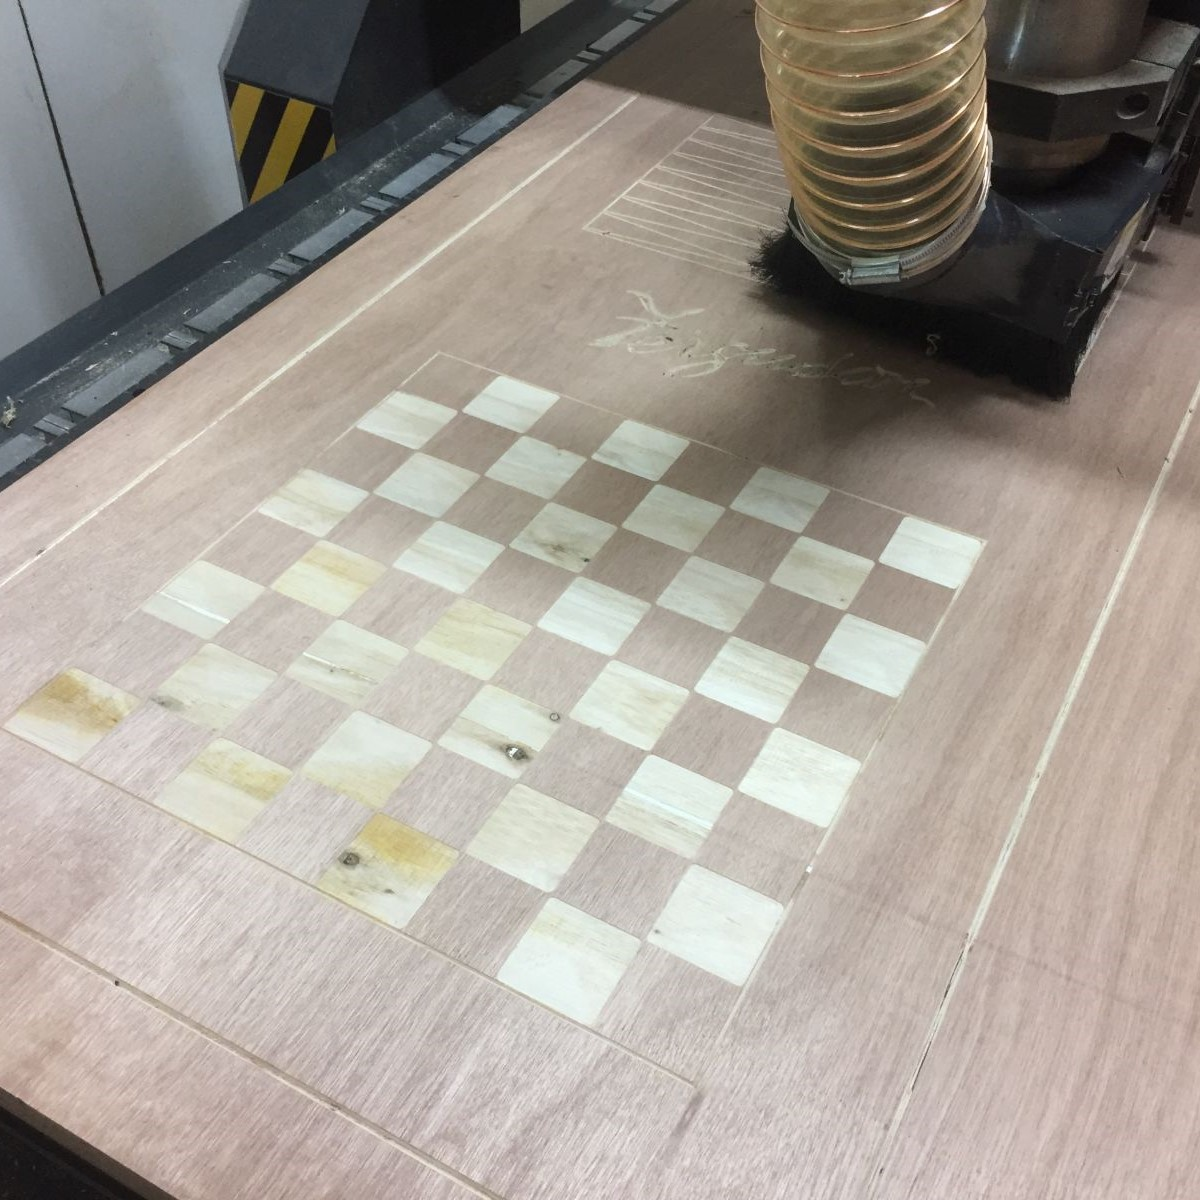 CNC Routed - Here you can see some of the other varied tasks our CNC router has been set to.